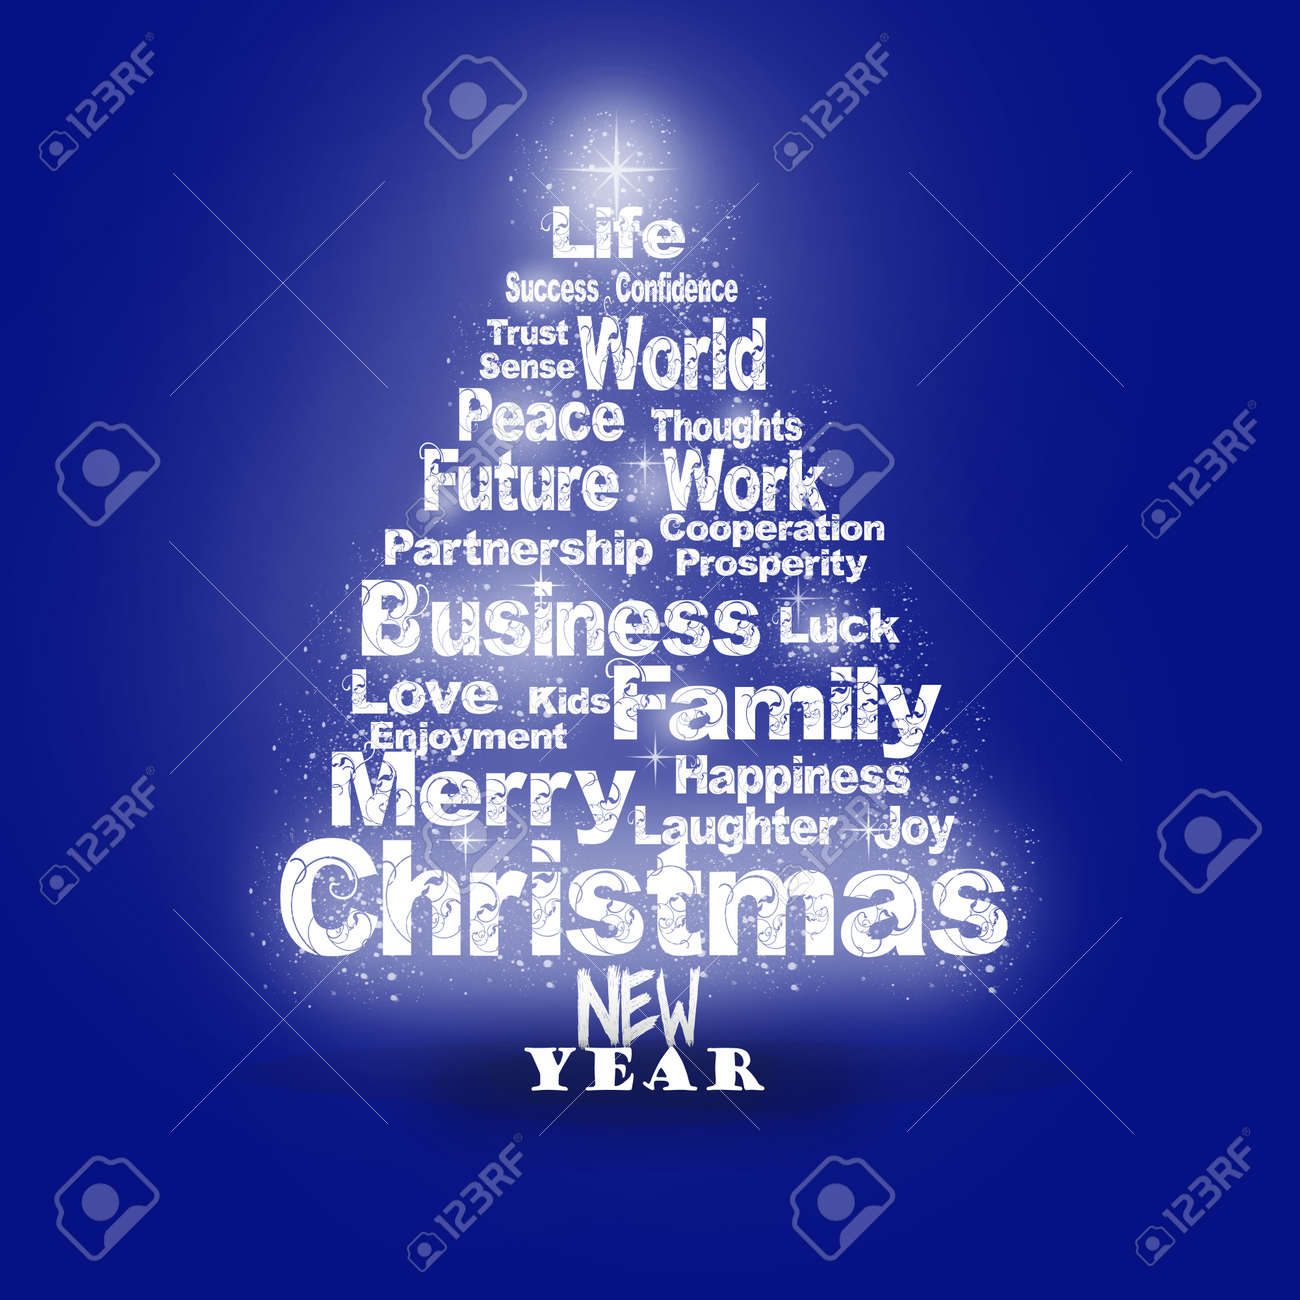 Abstract Christmas Greeting With Season Wishes In Blue Colors